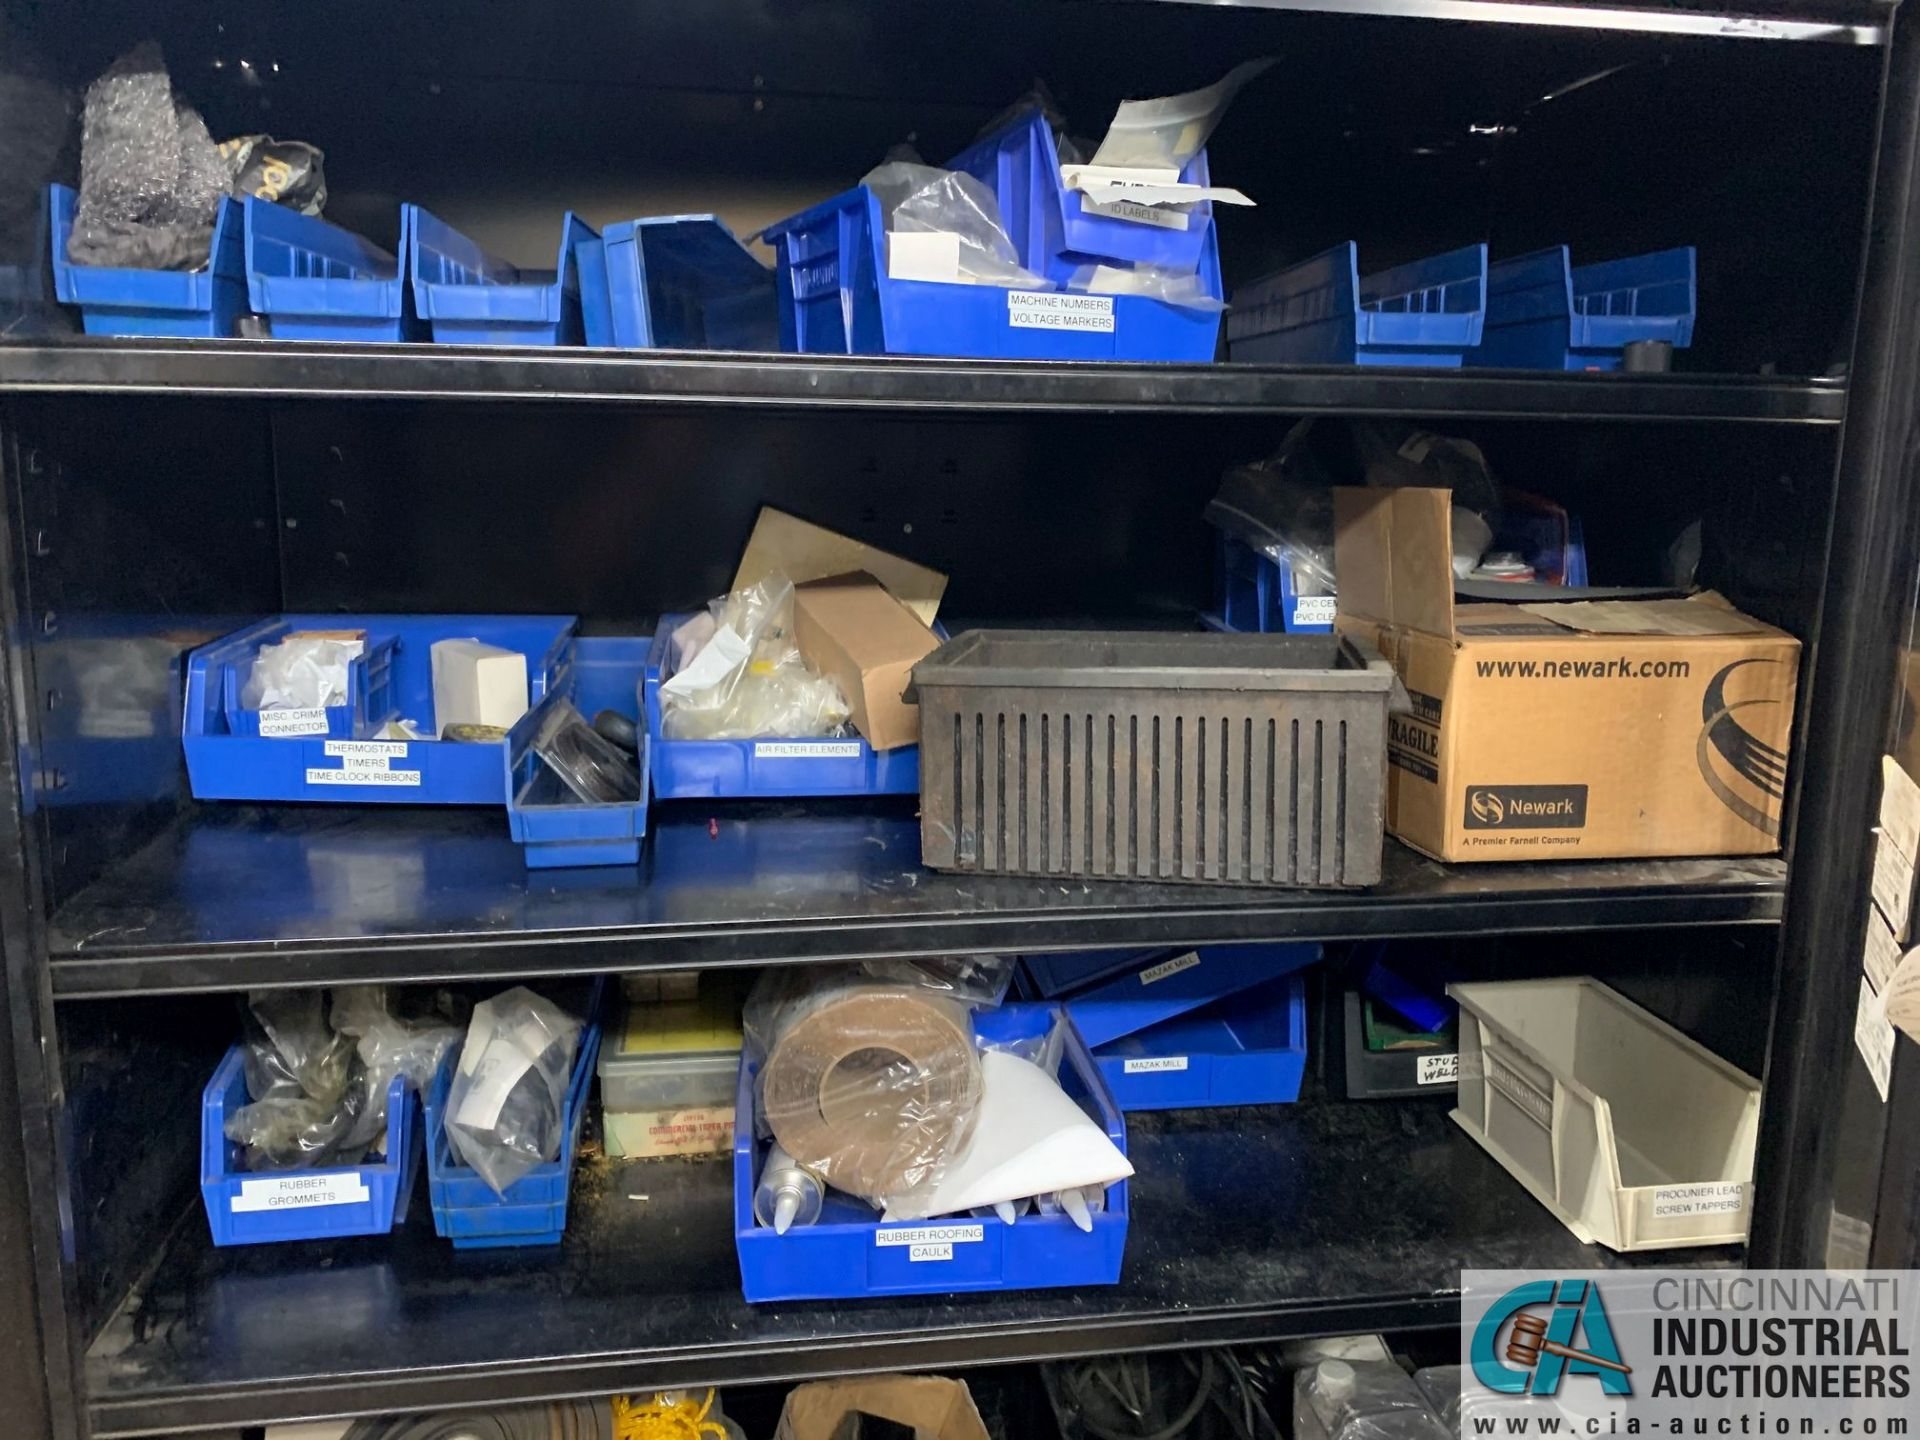 (LOT) (4) CABINETS WITH MAINTENANCE PARTS AND SUPPLIES, FUSES, WIRE, CONNECTORS AND RELATED - Image 12 of 13